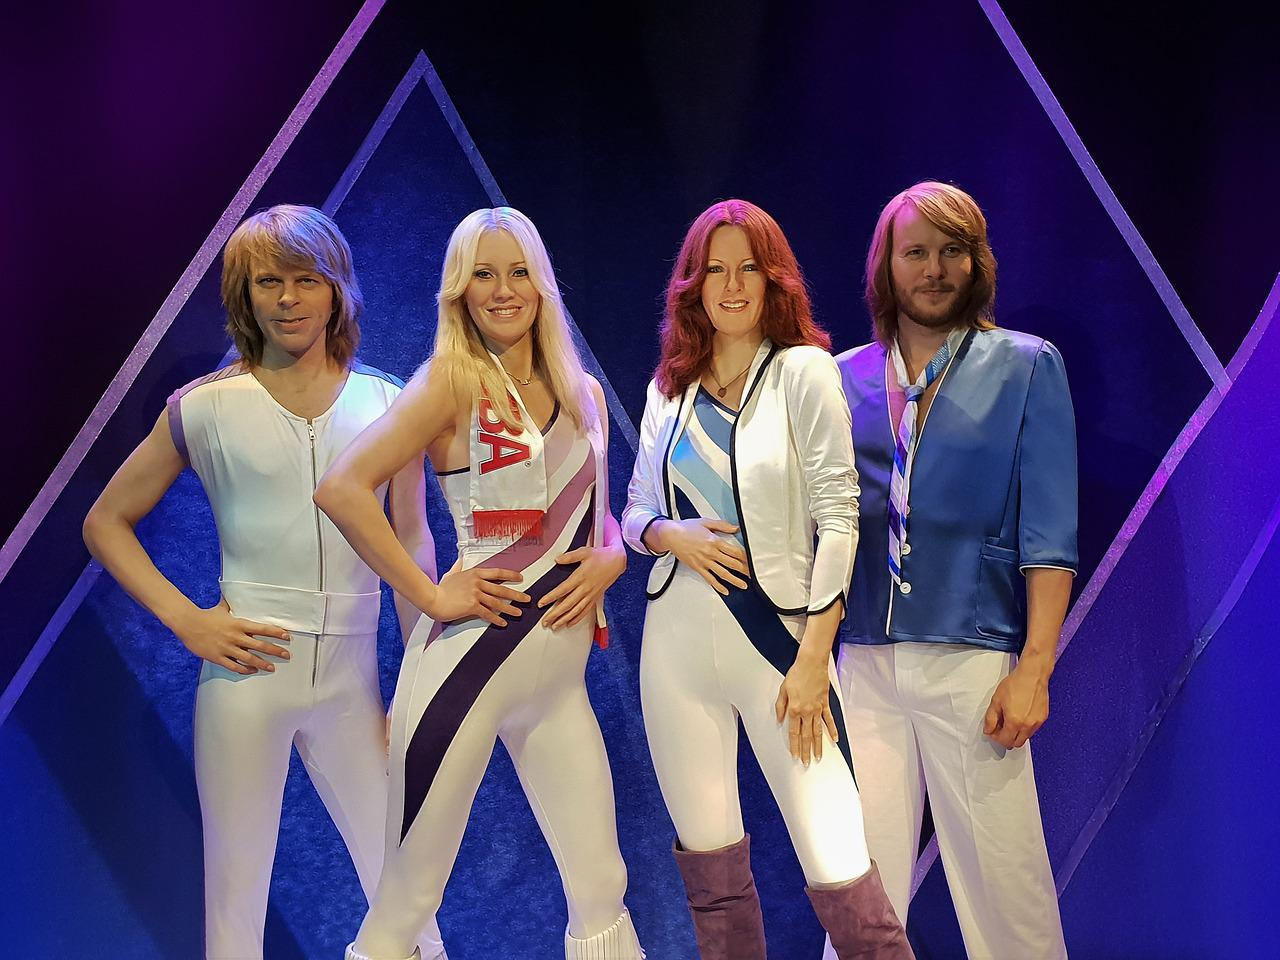 The Swedish pop group ABBA recently turned down an offer of $2 billion to reunite.